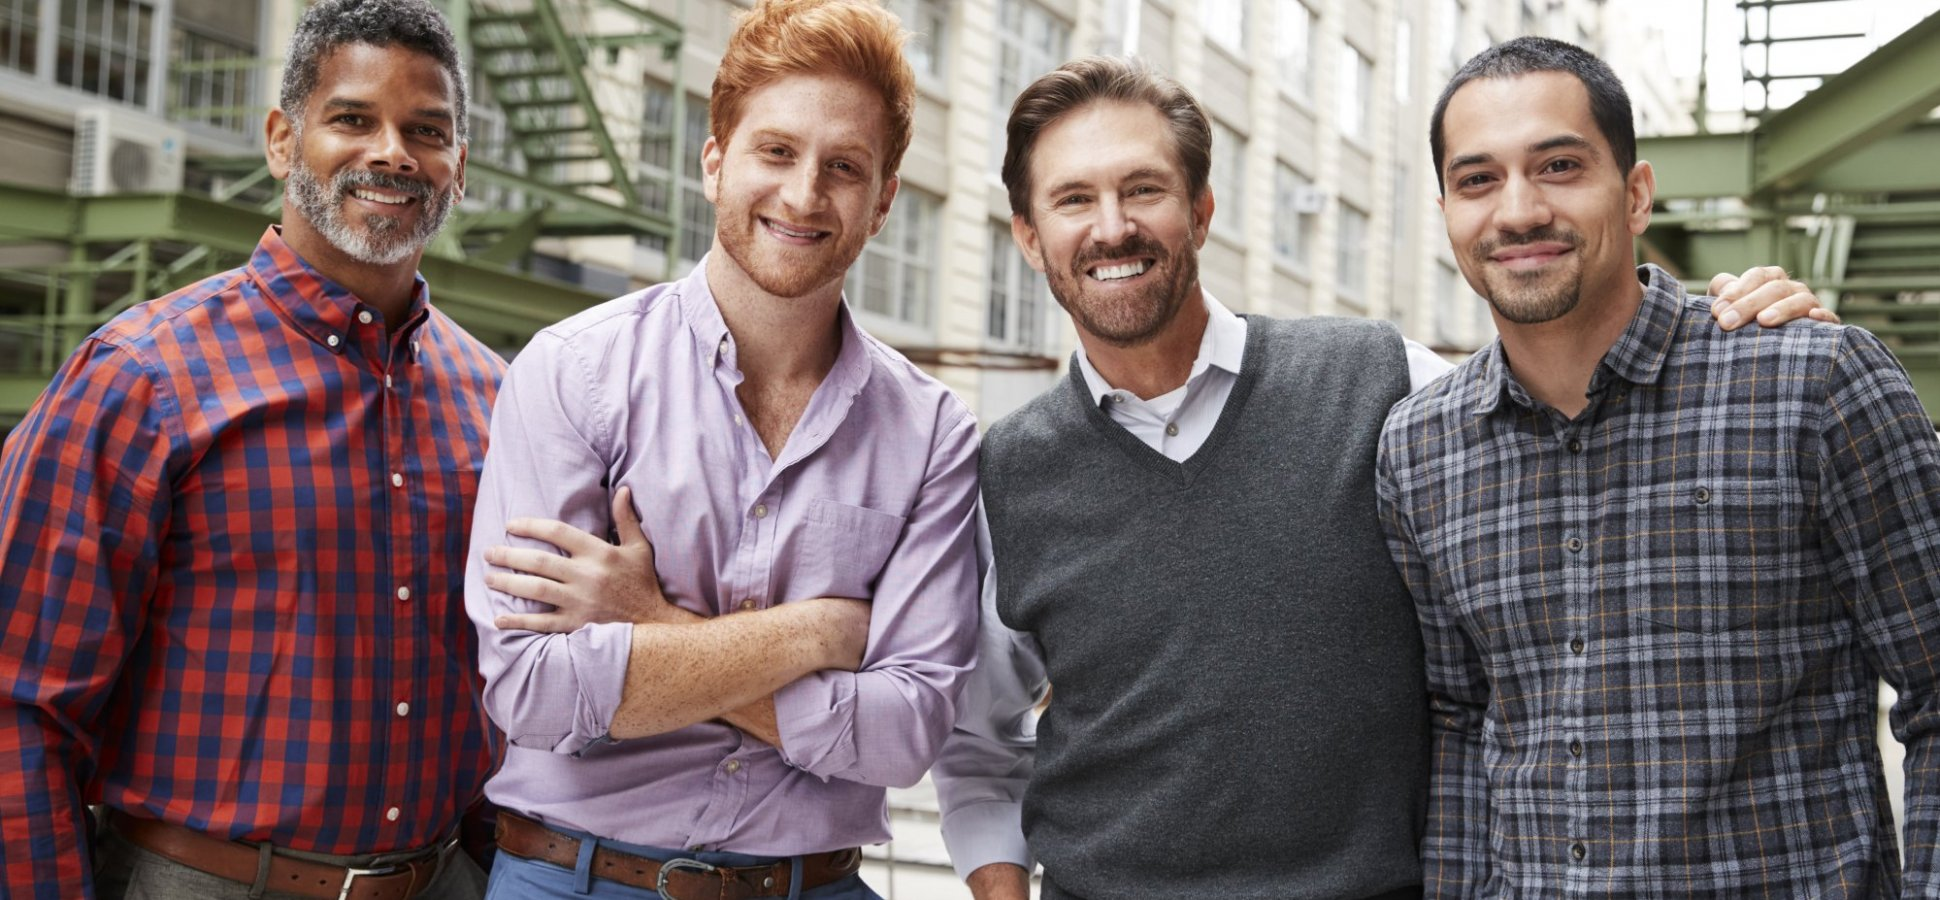 A Massive New Study of 5,000 Men Says This 1 Very Surprising Thing Predicts Happiness